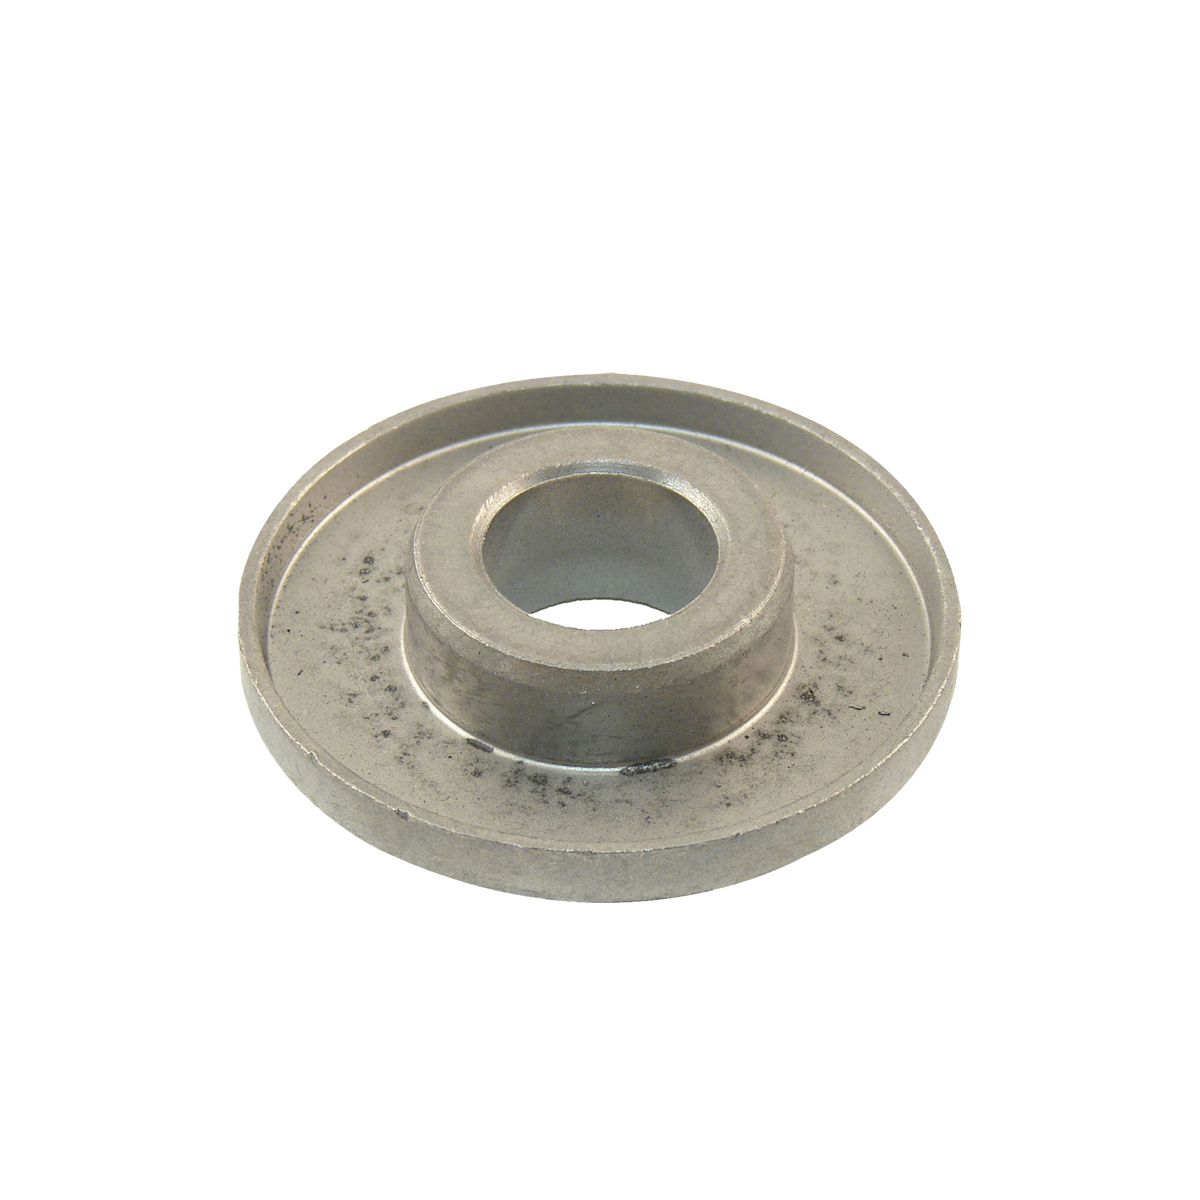 Deck Spindle Spacer 748-3065A